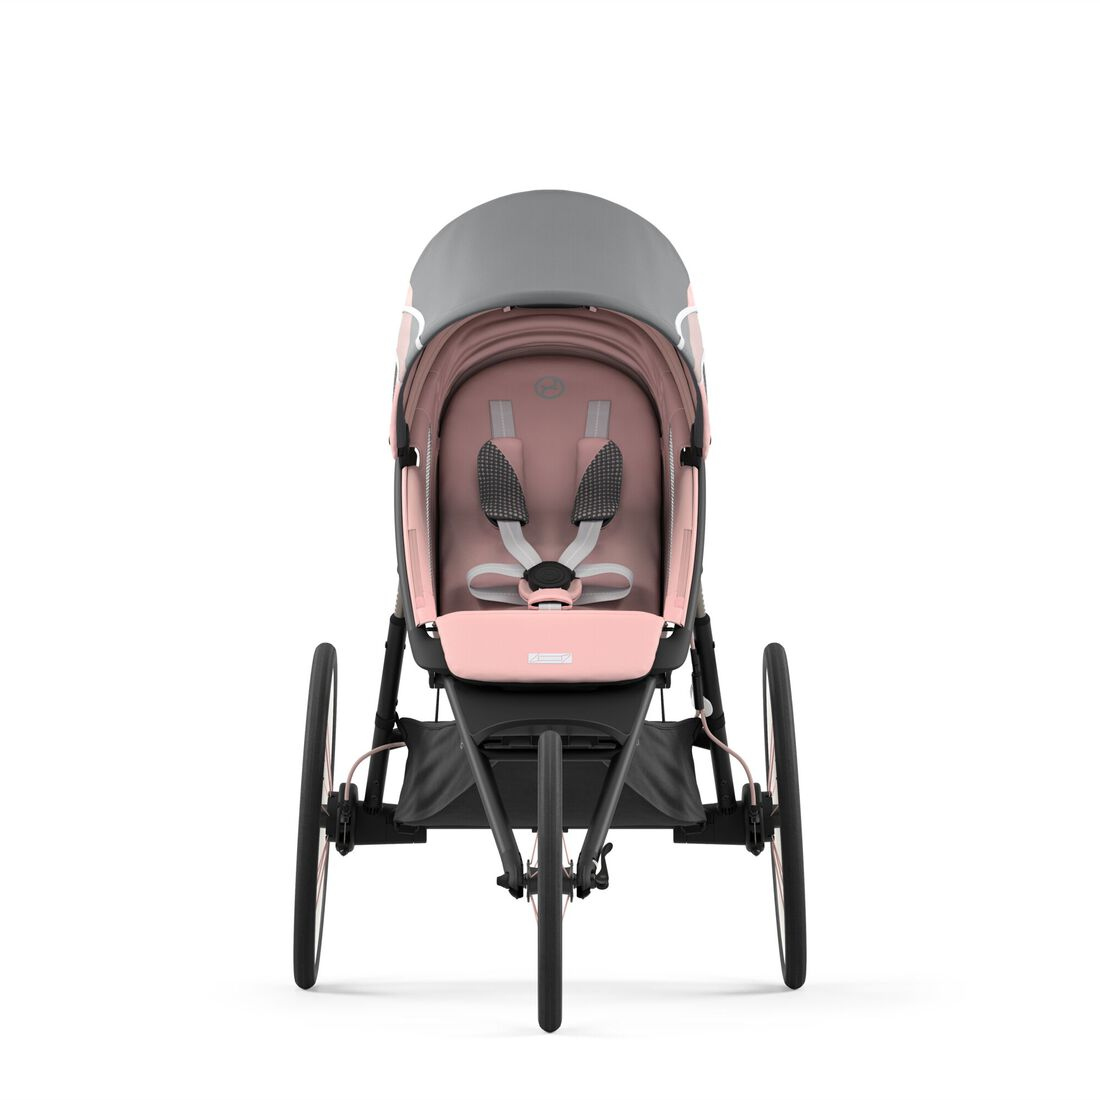 CYBEX Avi Seat Pack - Silver Pink in Silver Pink large image number 3